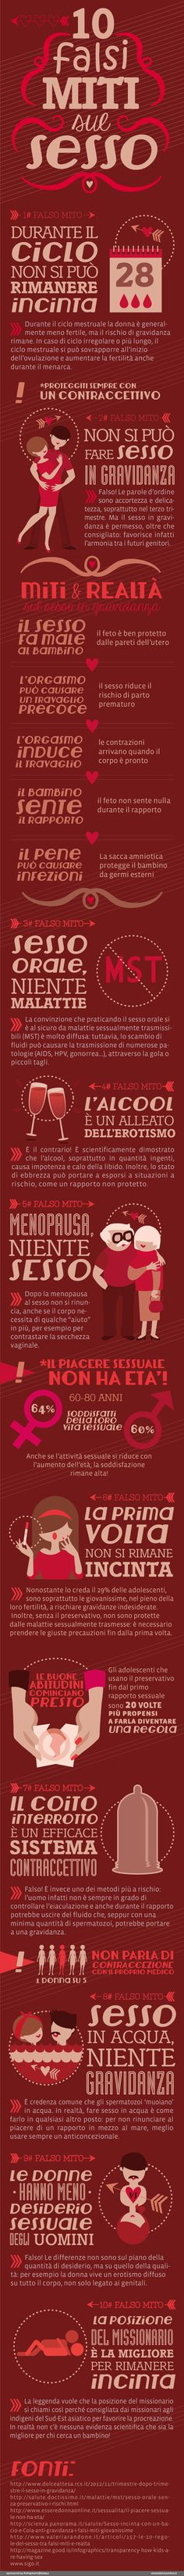 10 falsi miti sul sesso - Infografiche esseredonnaonline by kleland studio di Alice Borghi Chris Hemsworth Thor Workout, Wellness Fitness, Health Fitness, Information Architecture, Learning Italian, Body And Soul, Problem Solving, Human Body, Did You Know